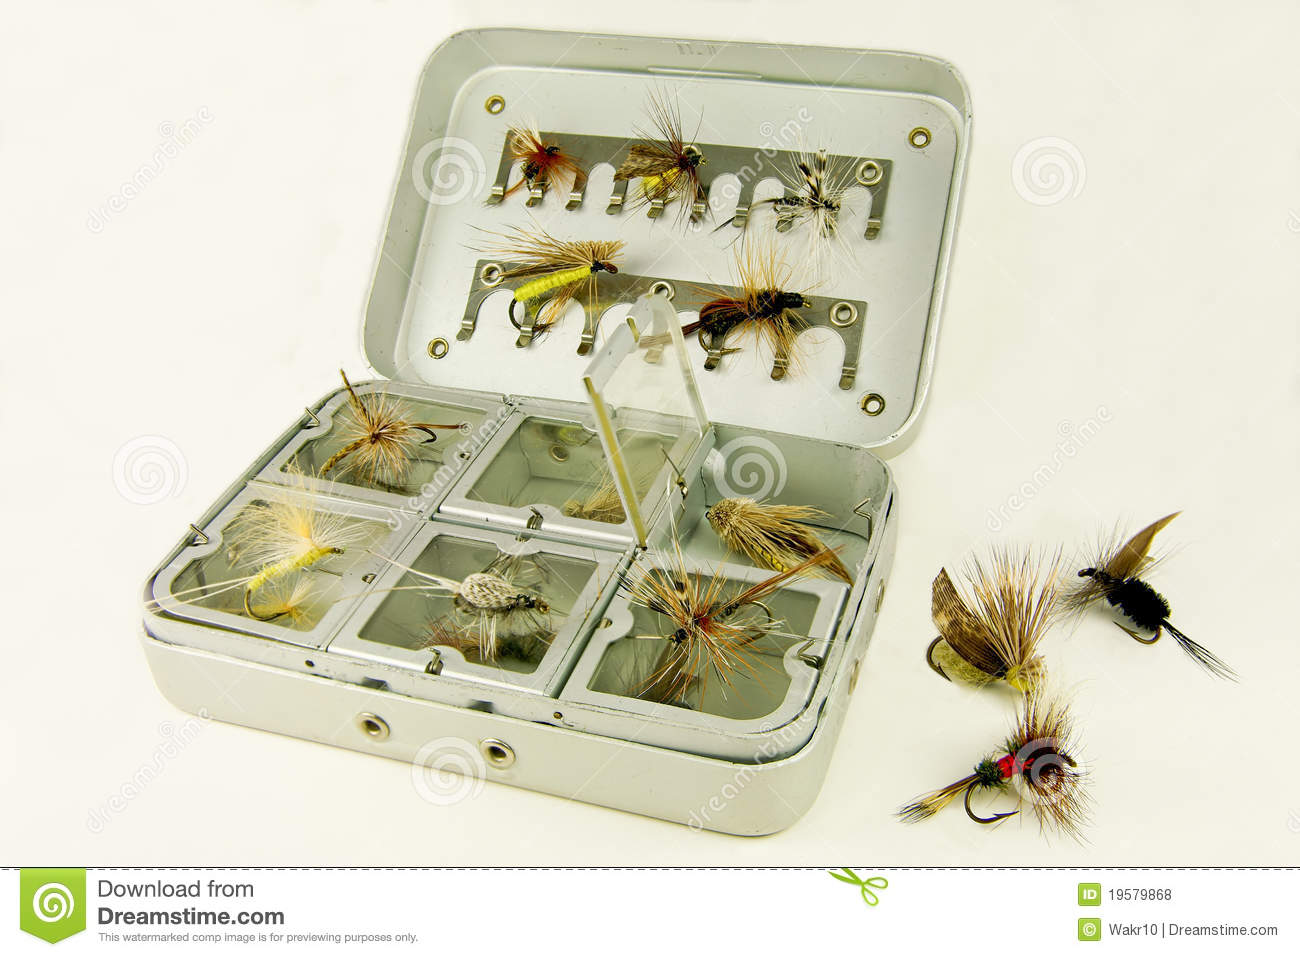 Fly fishing box royalty free stock photos image 19579868 for Fly fishing subscription box